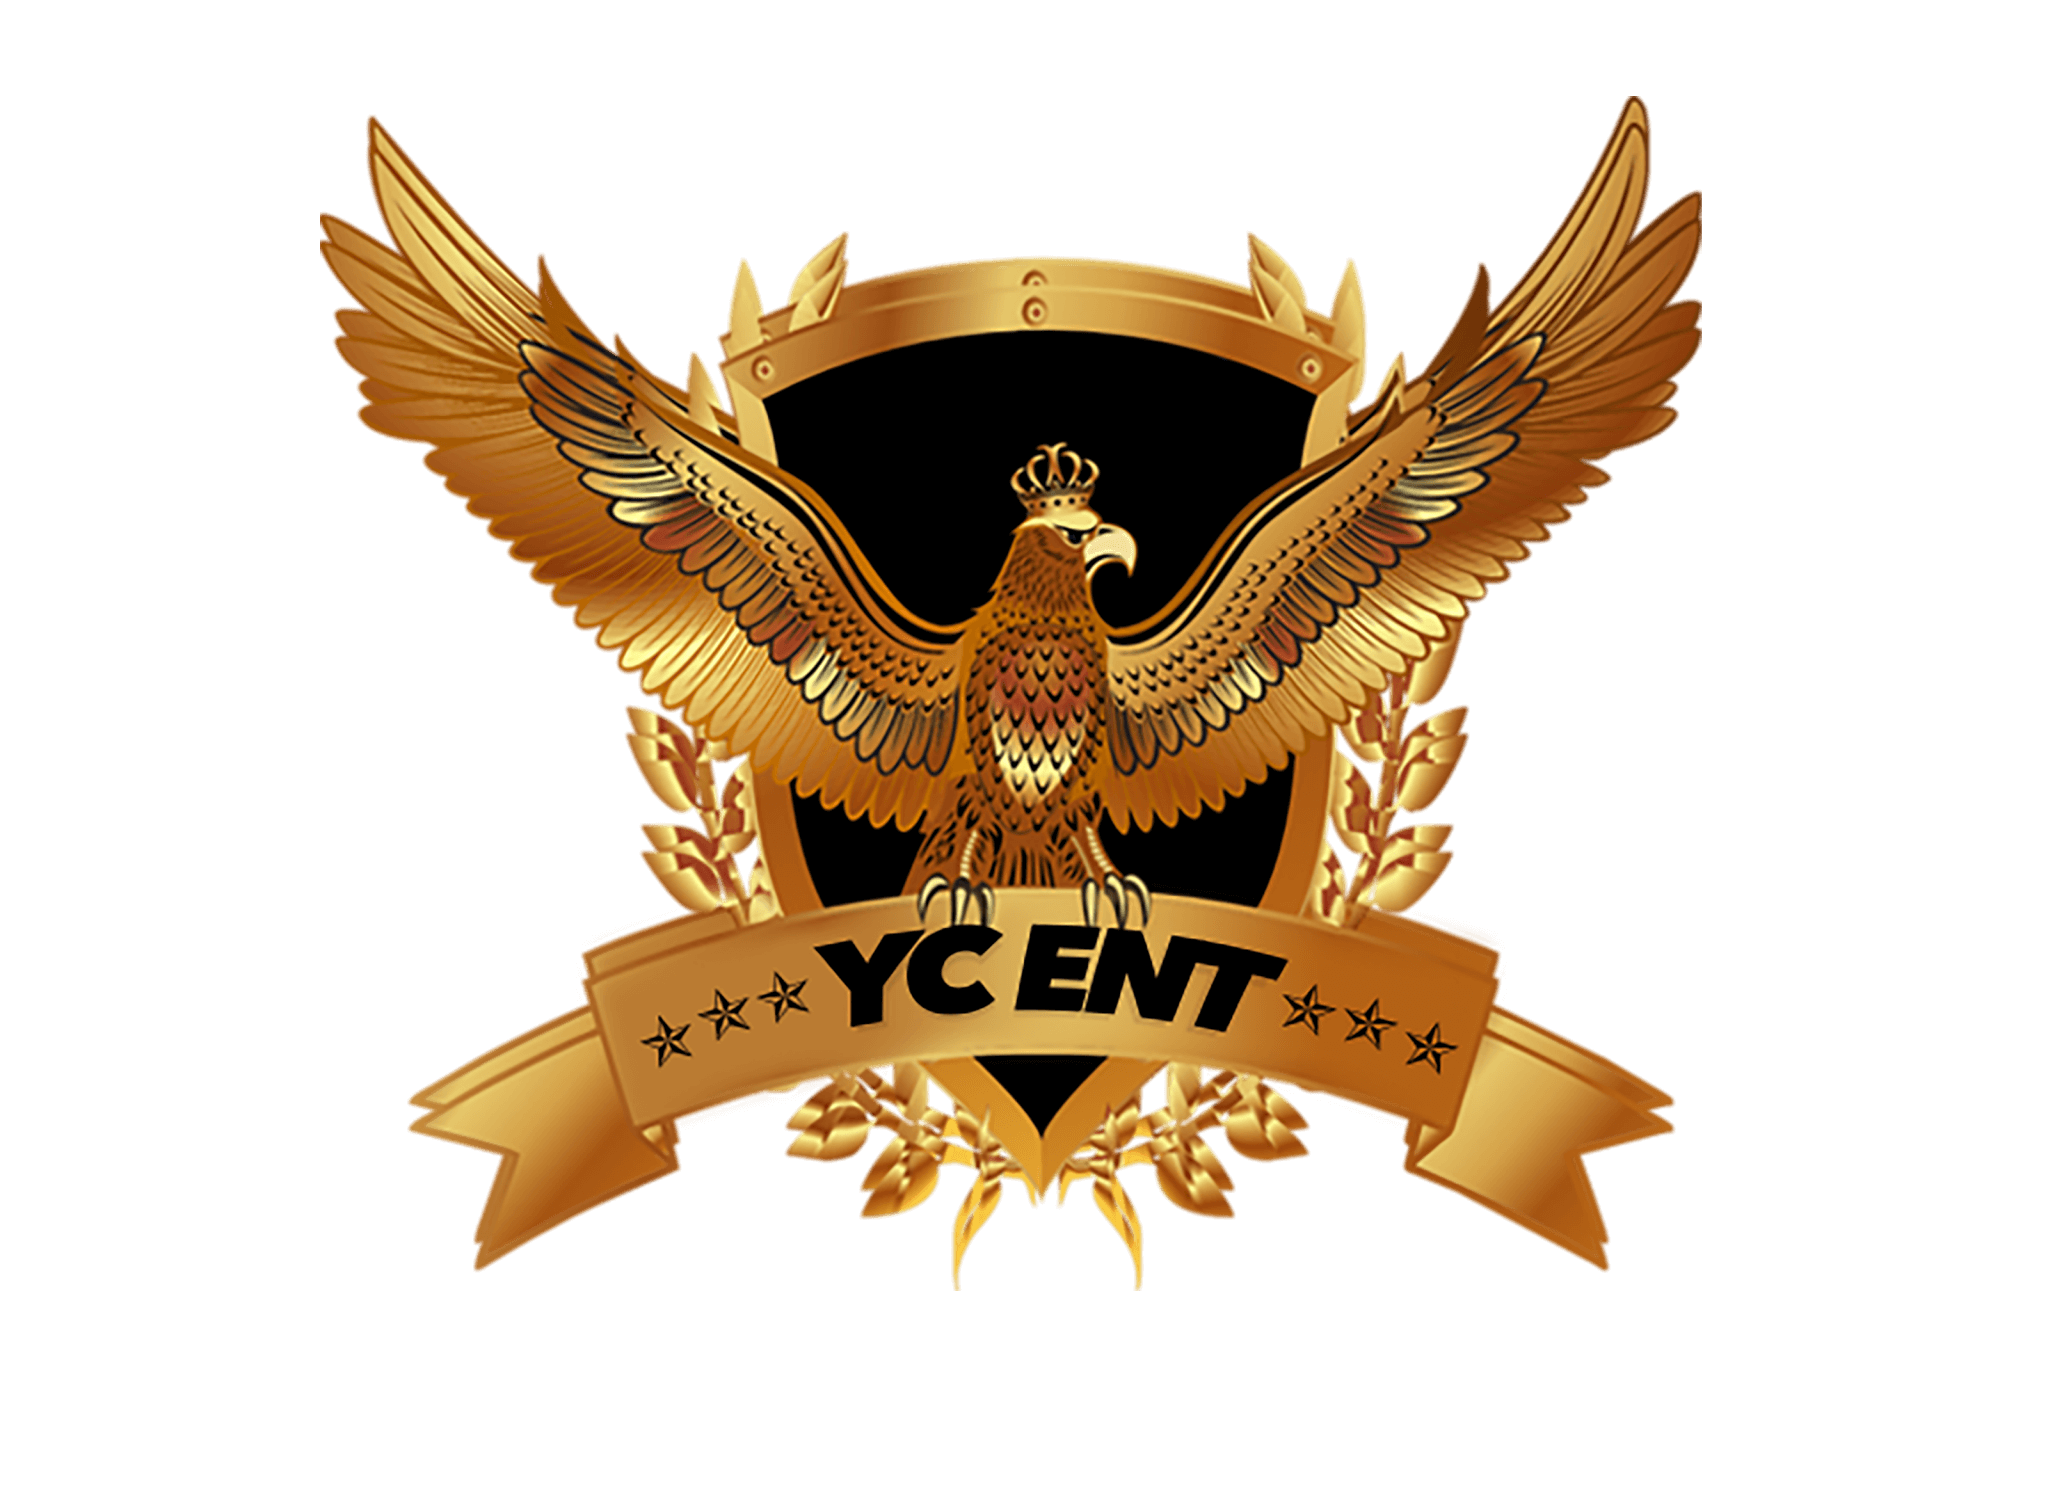 Yc Entertainment LLC - You Chose Entertainment King Yc